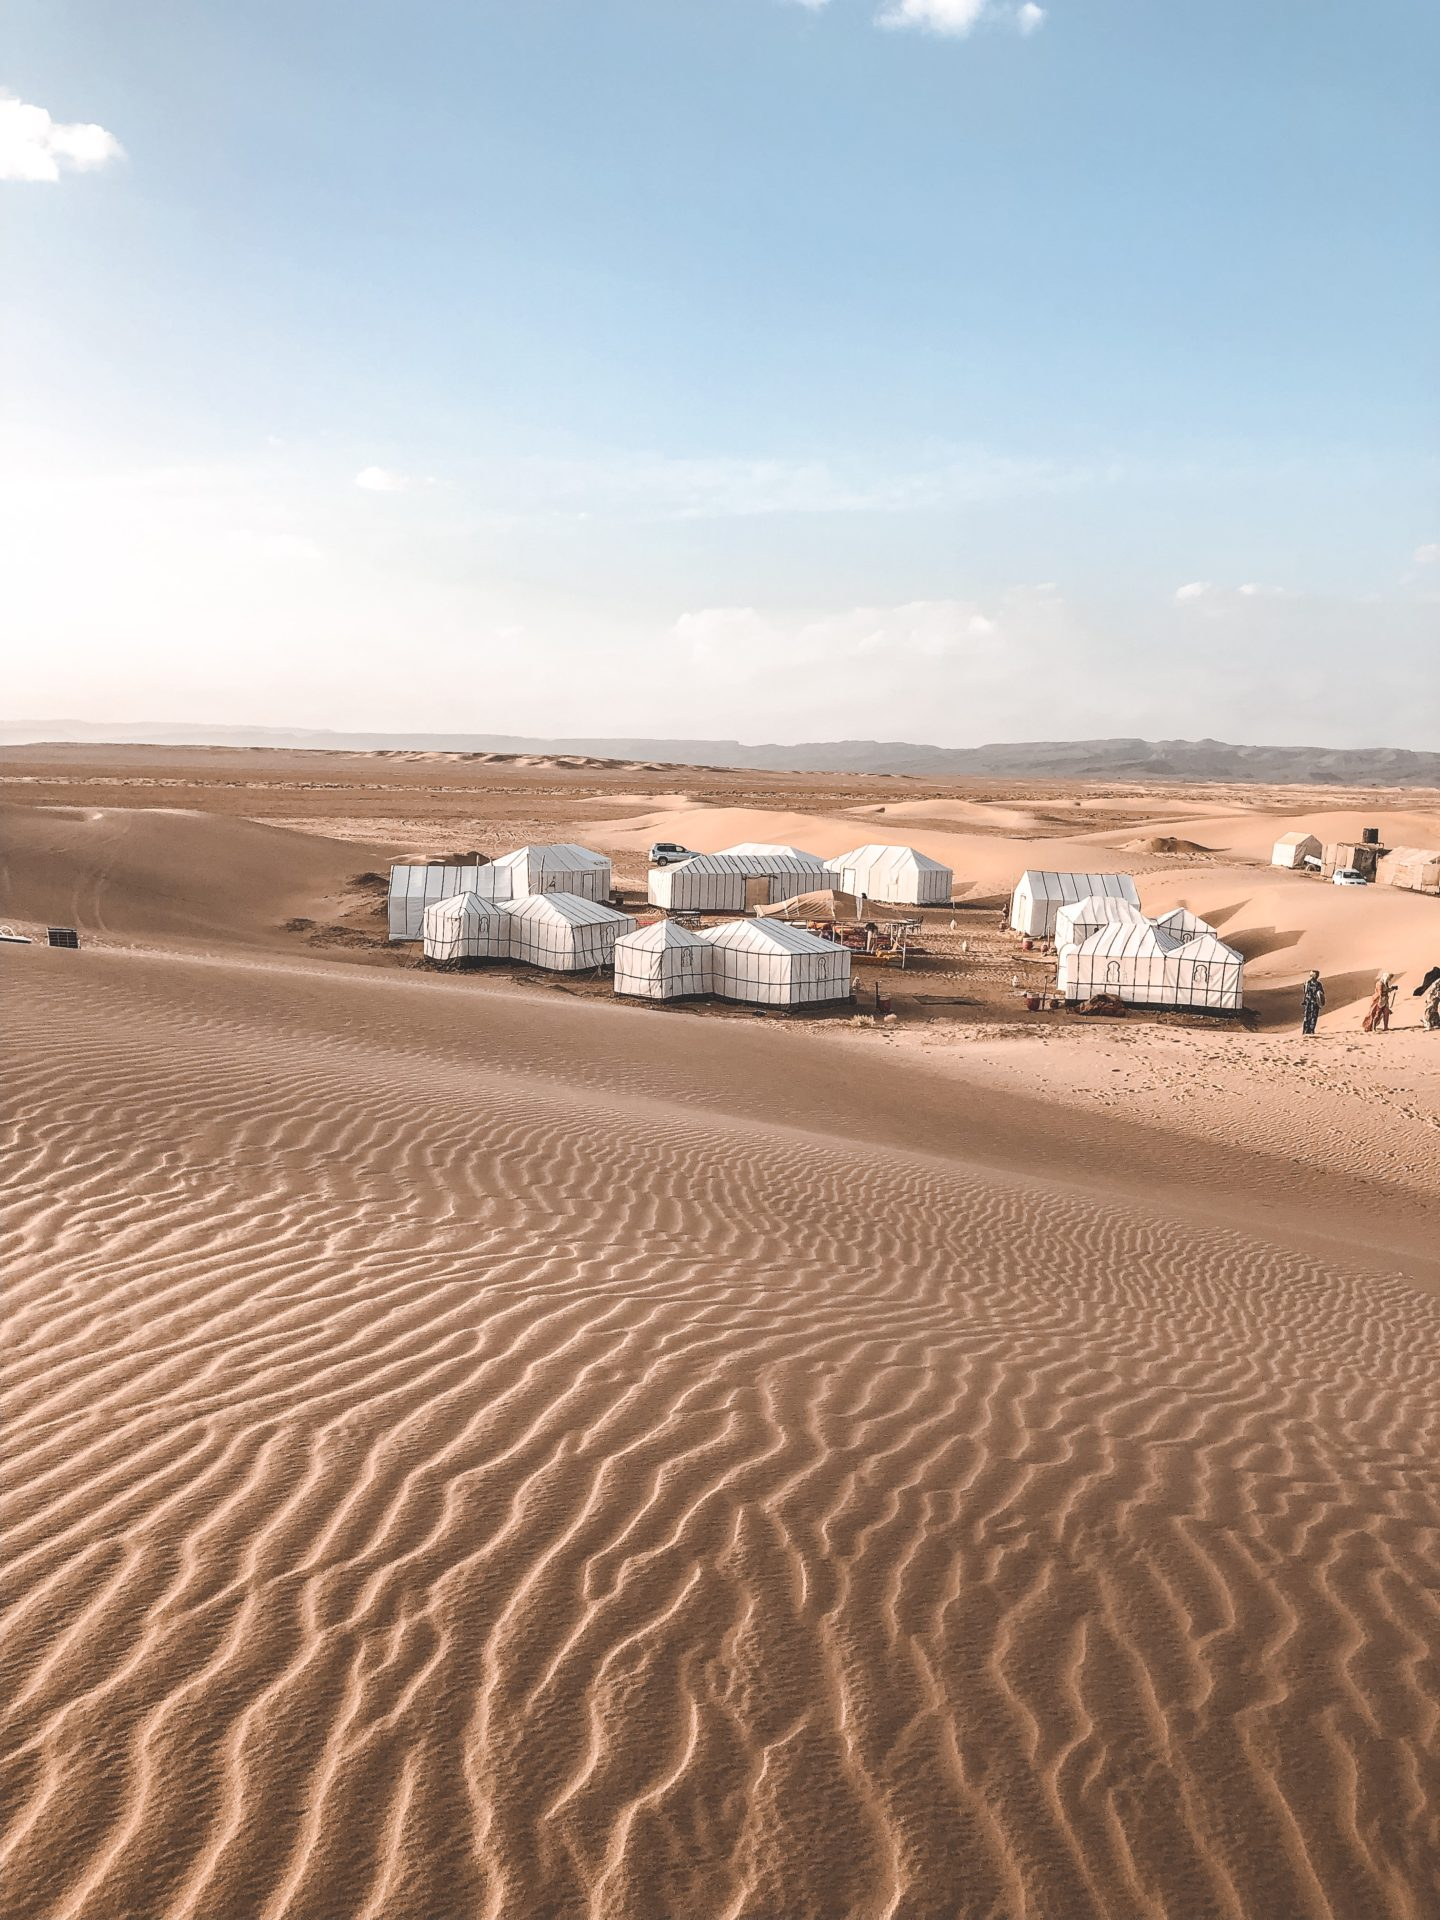 Our glamping site in the middle of absolutely nowhere in the Saharan Desert of Morocco during golden hour.